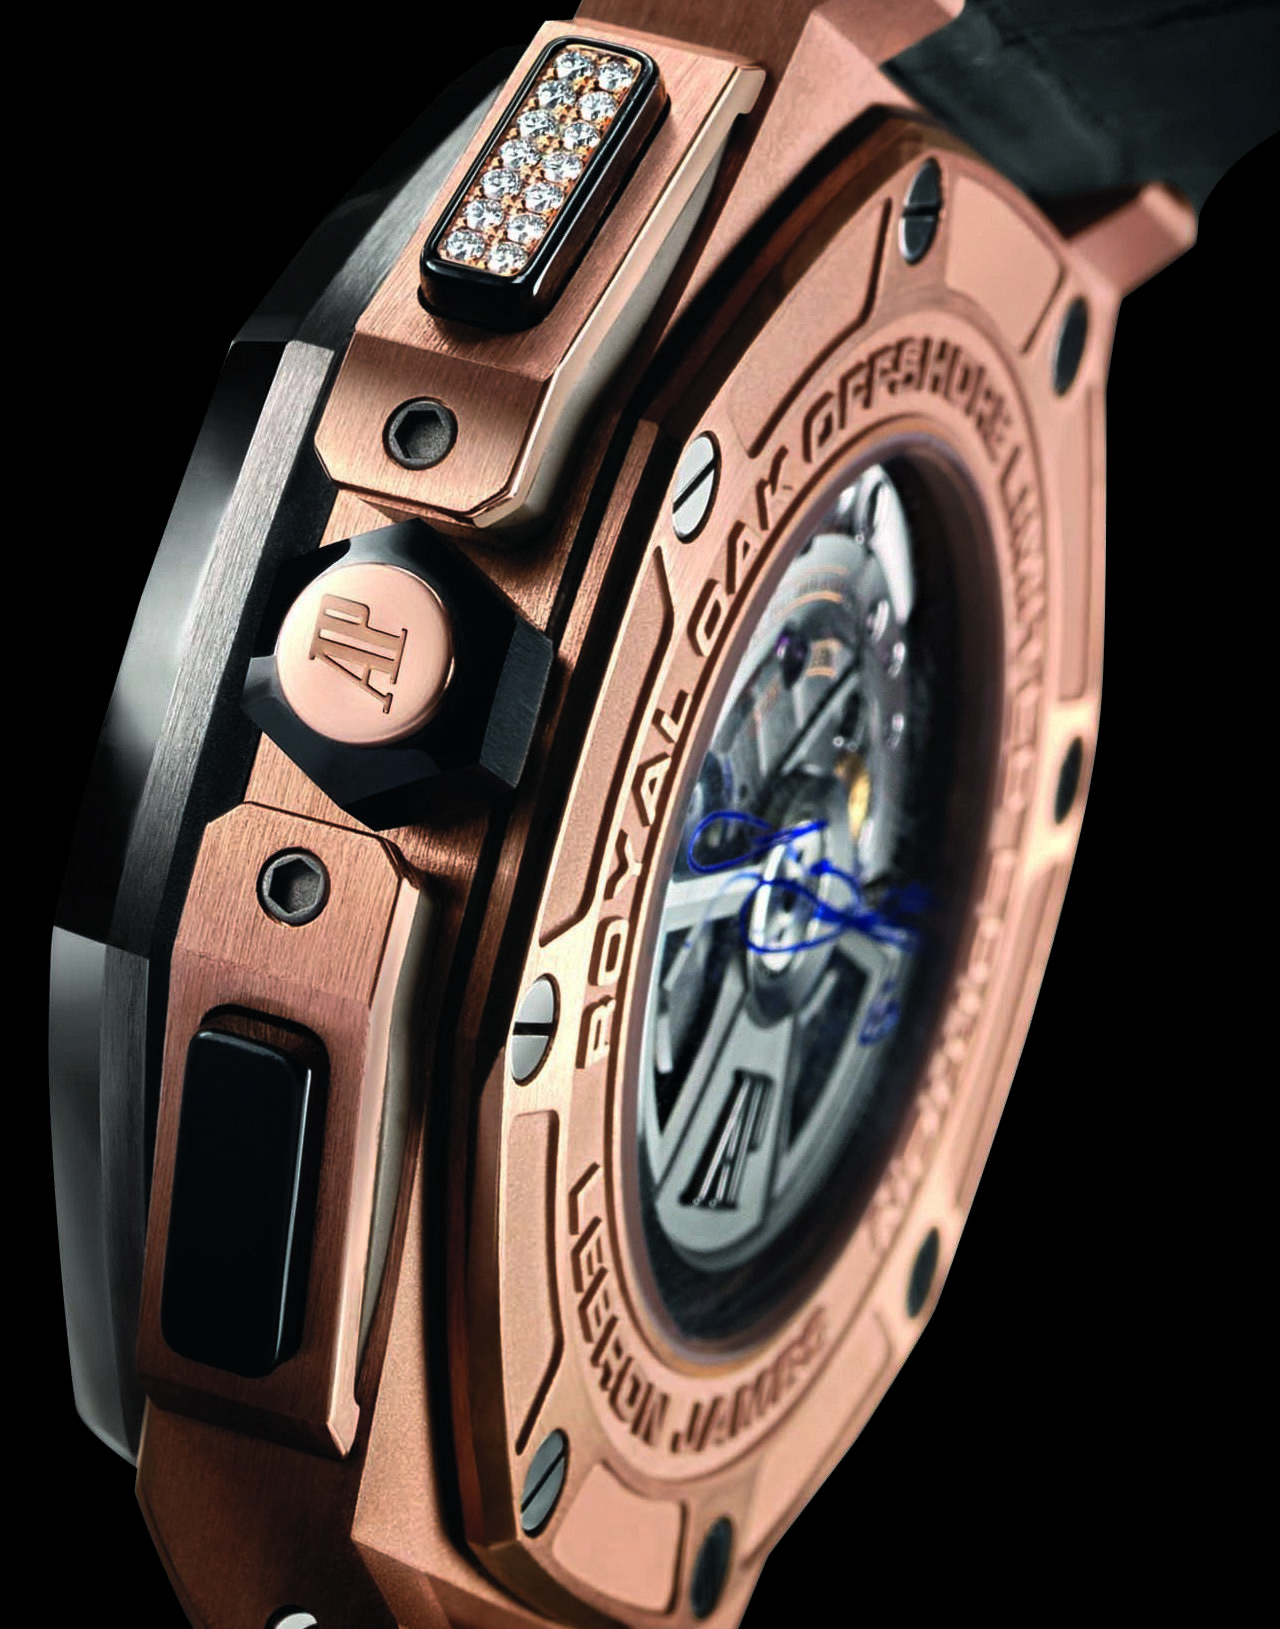 audemars-piguet-royal-oak-offshore-lebron-james-limited-edition_100-100